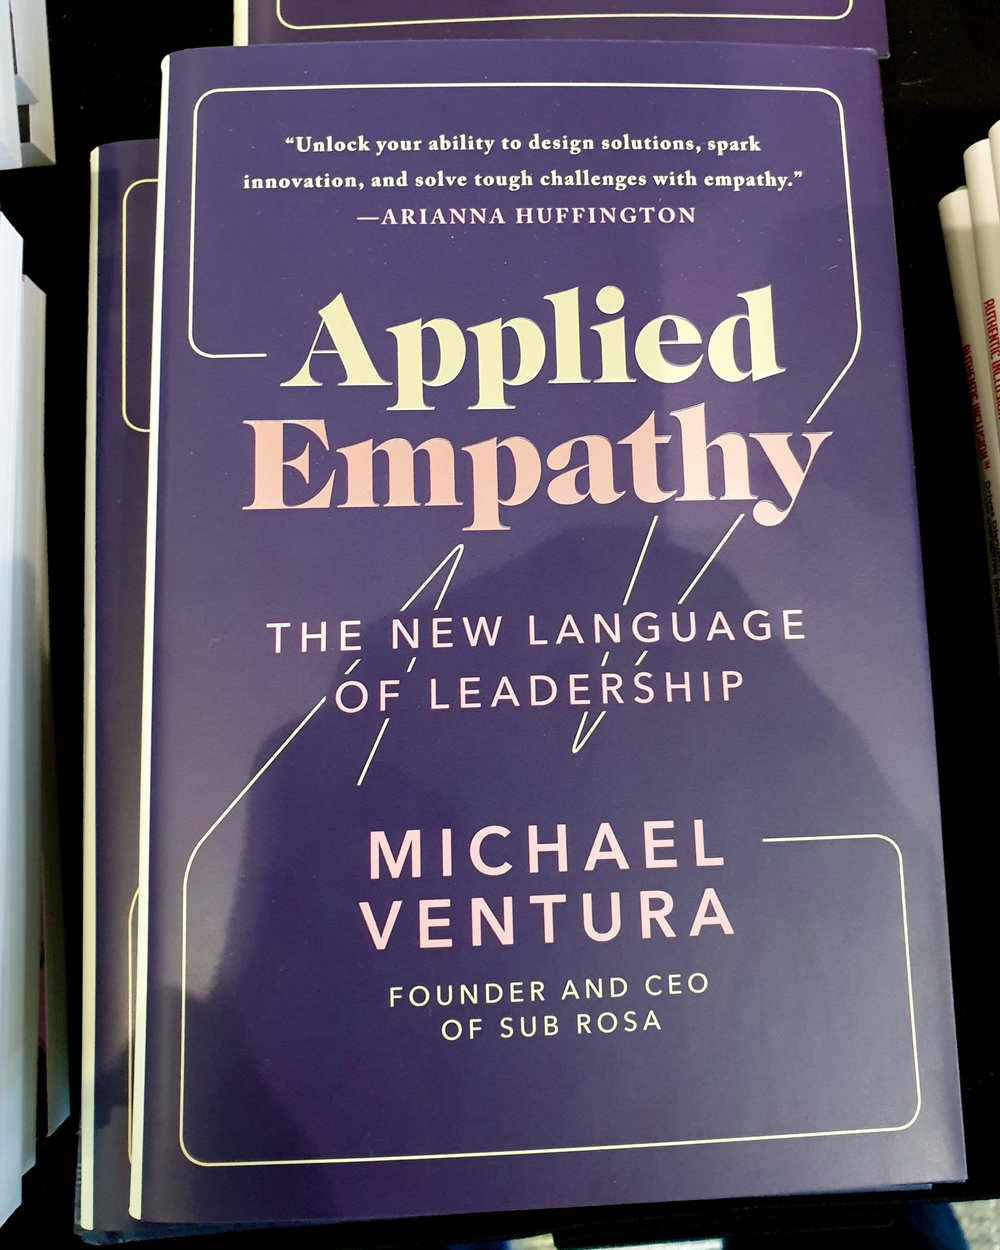 Books on empathy for managers are sold at the SXSW bookstore. But has empathy turned into a box-ticking exercise?